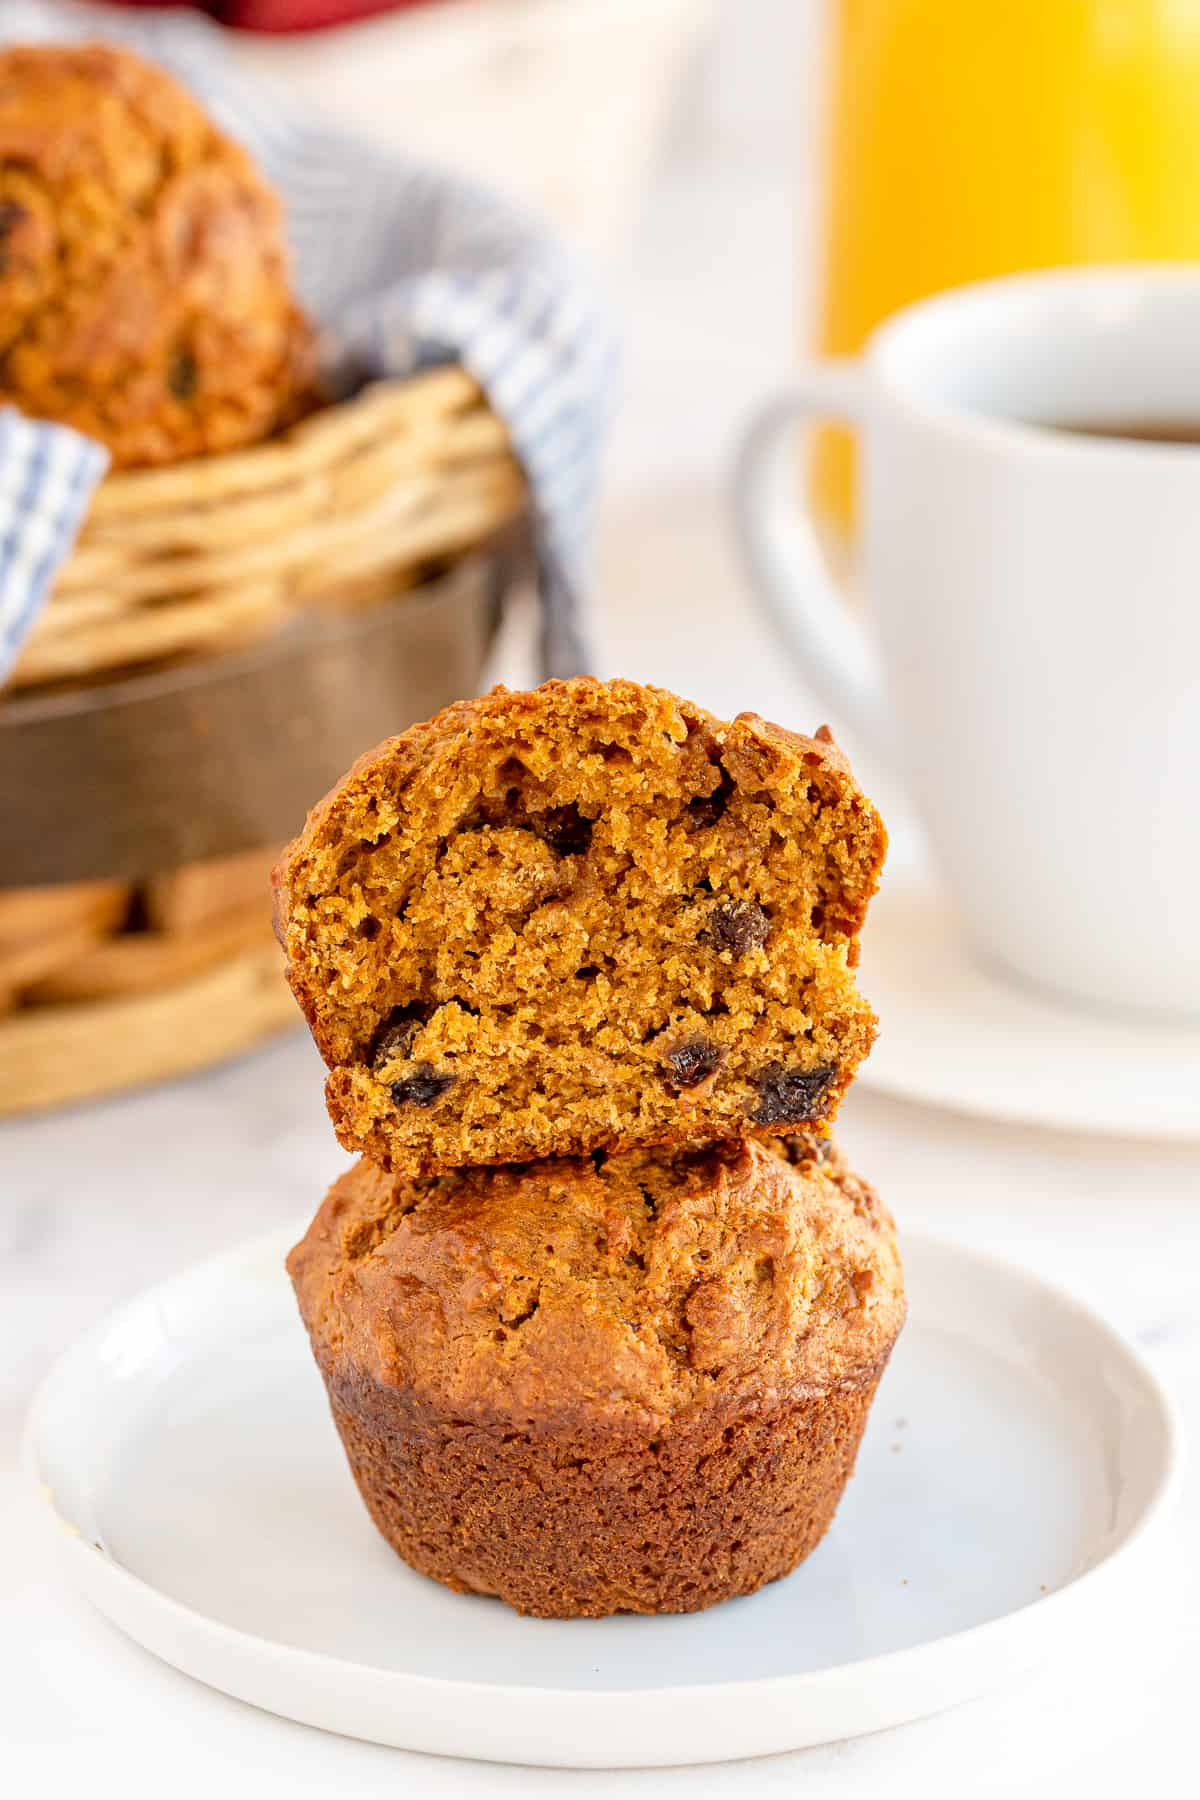 A bran muffin with a bite missing stacked on top of another.